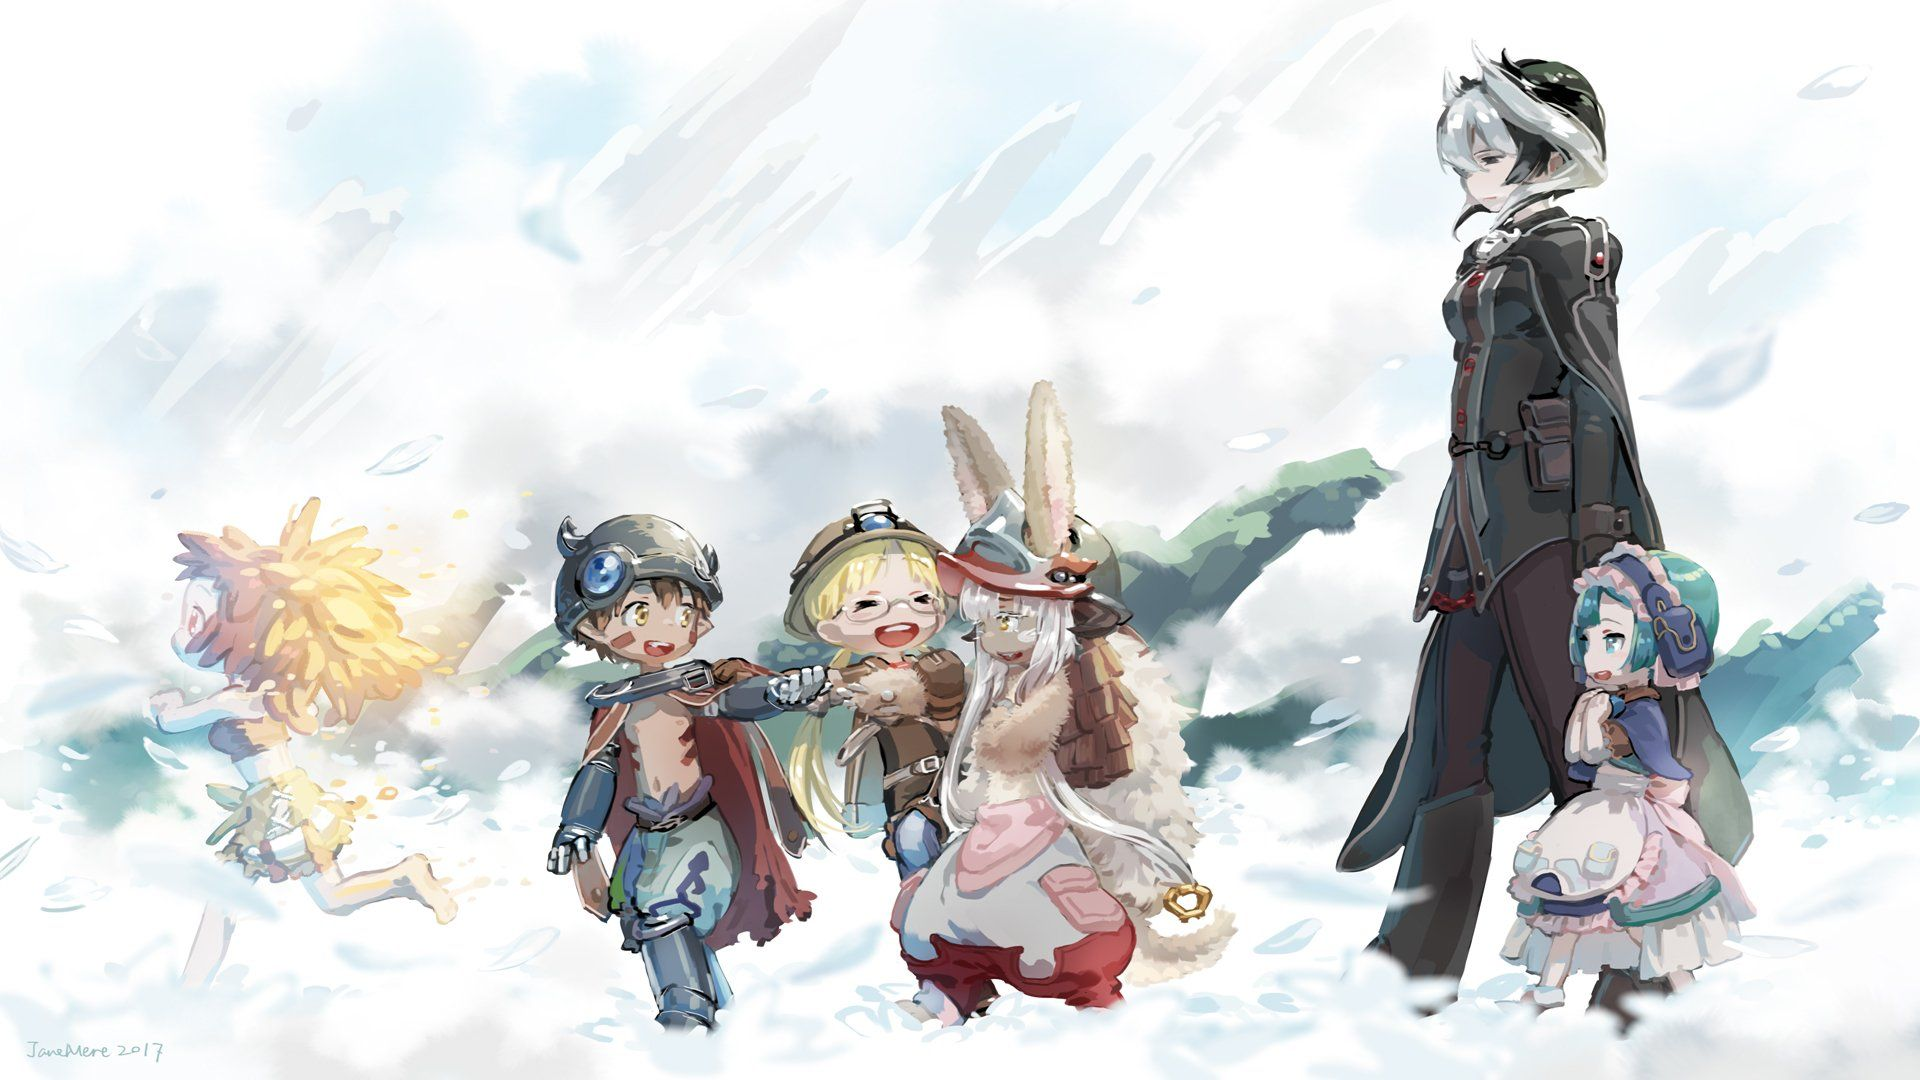 Made in Abyss Wallpaper HD Made in Abyss Anime Otaku anime 1920x1080